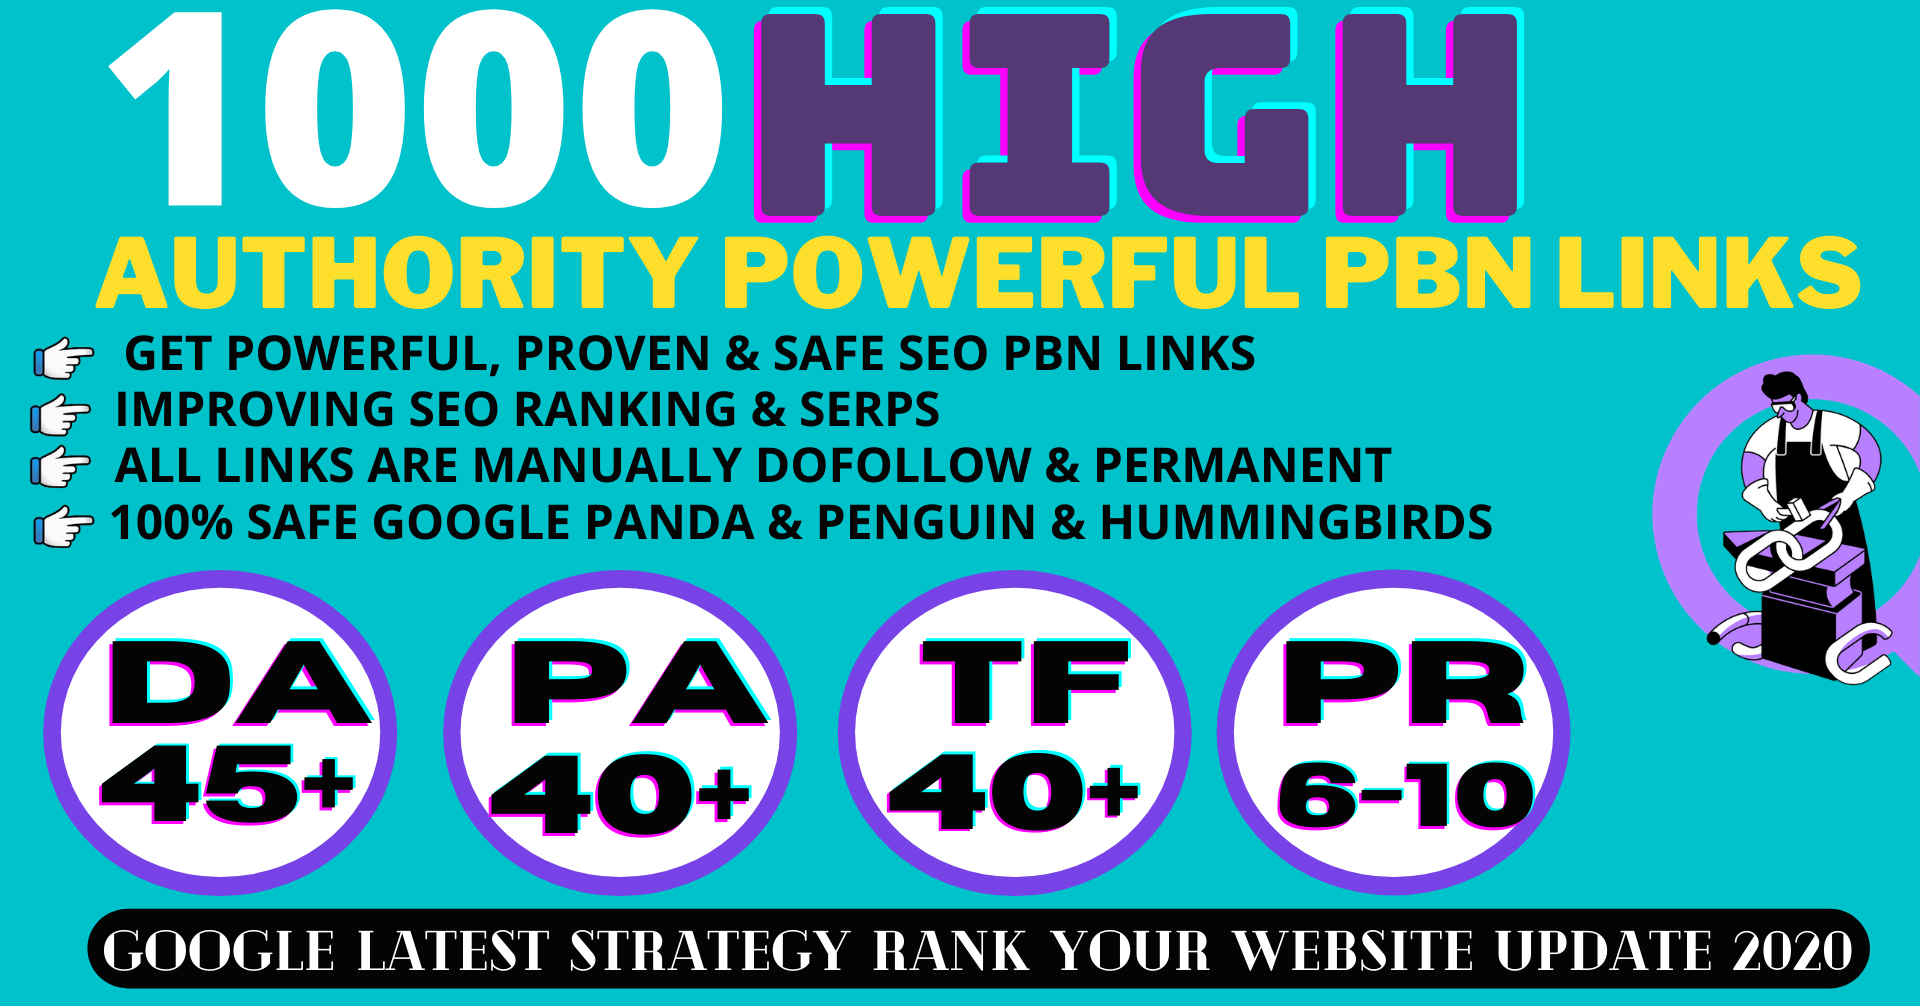 BUY1 GET1 1000 Permanent PBN Backlinks Web2.0 With High DA45+PA40+PR6+ Links Homepage Unique website